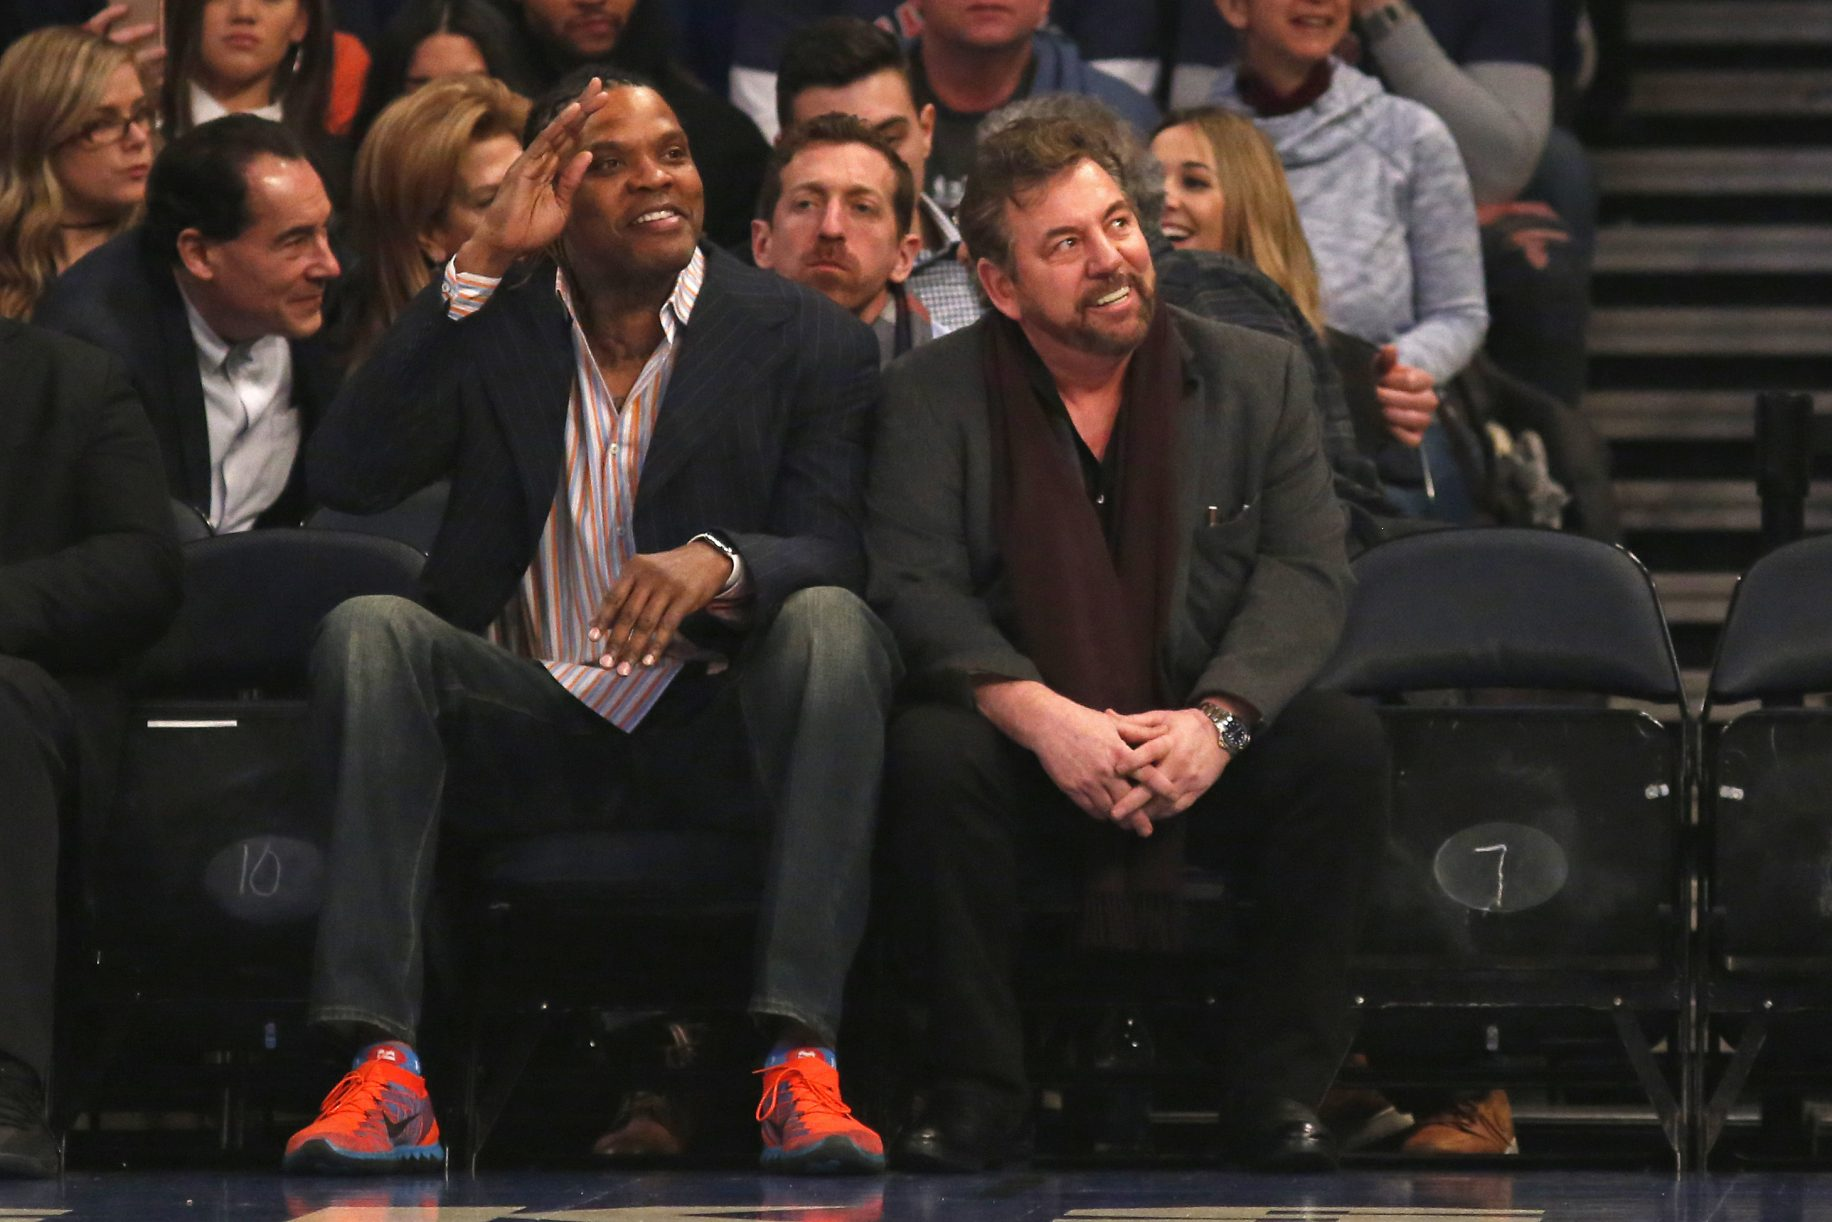 James Dolan slaps Charles Oakley in the face by sitting next to Latrell Sprewell